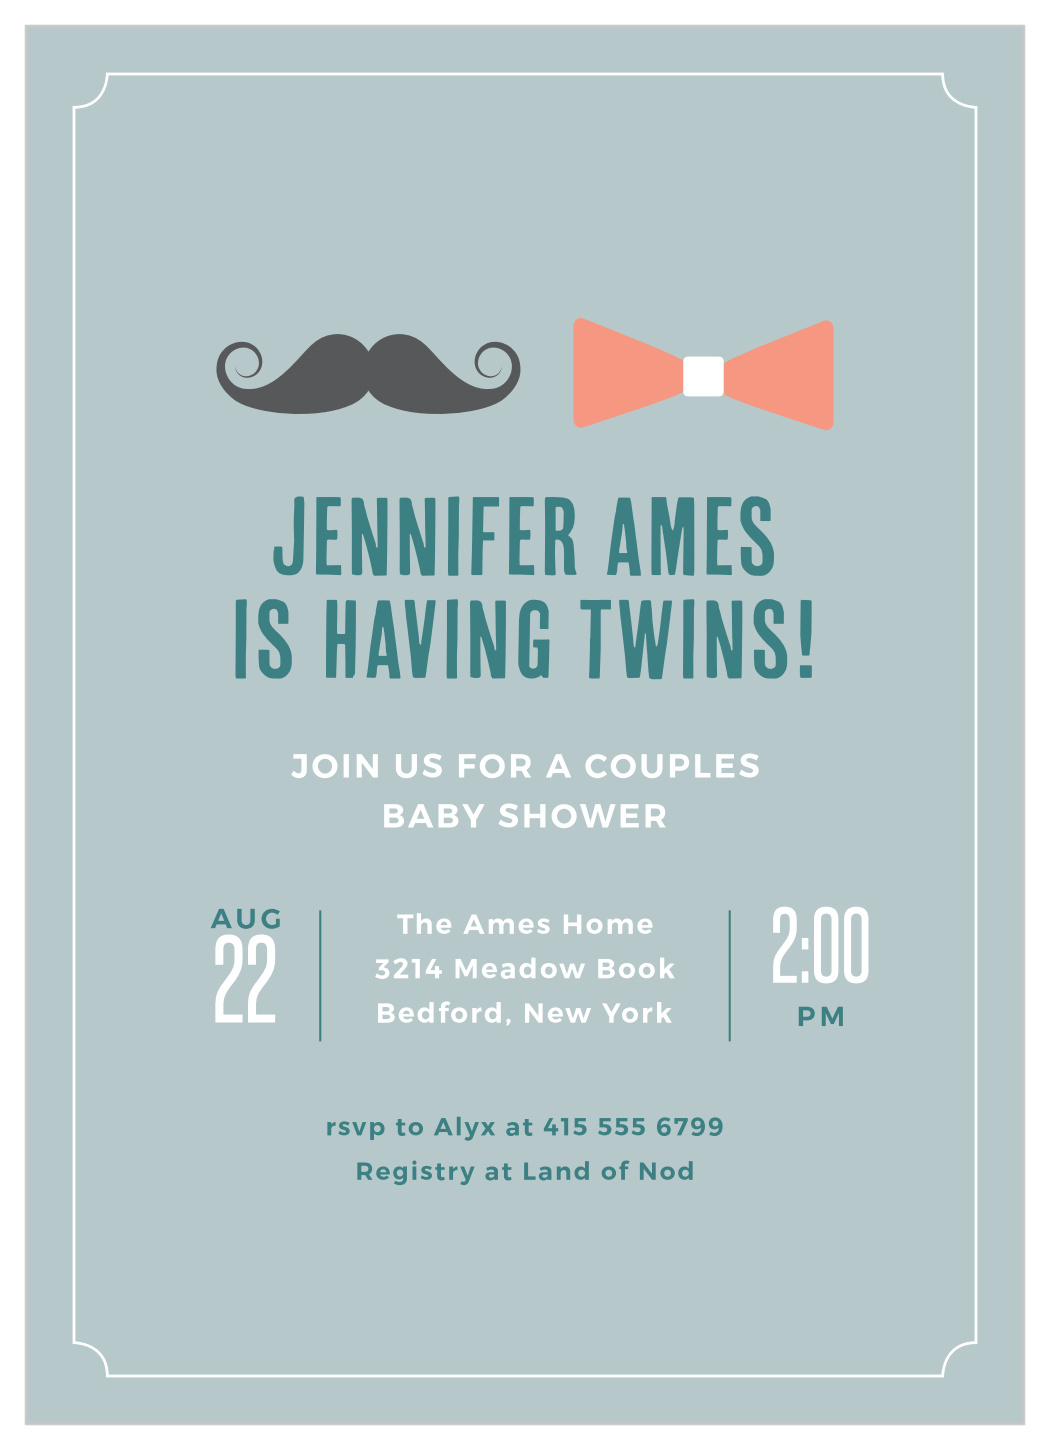 Boy And Girl Twins Baby Shower Invitation By Basic Invite